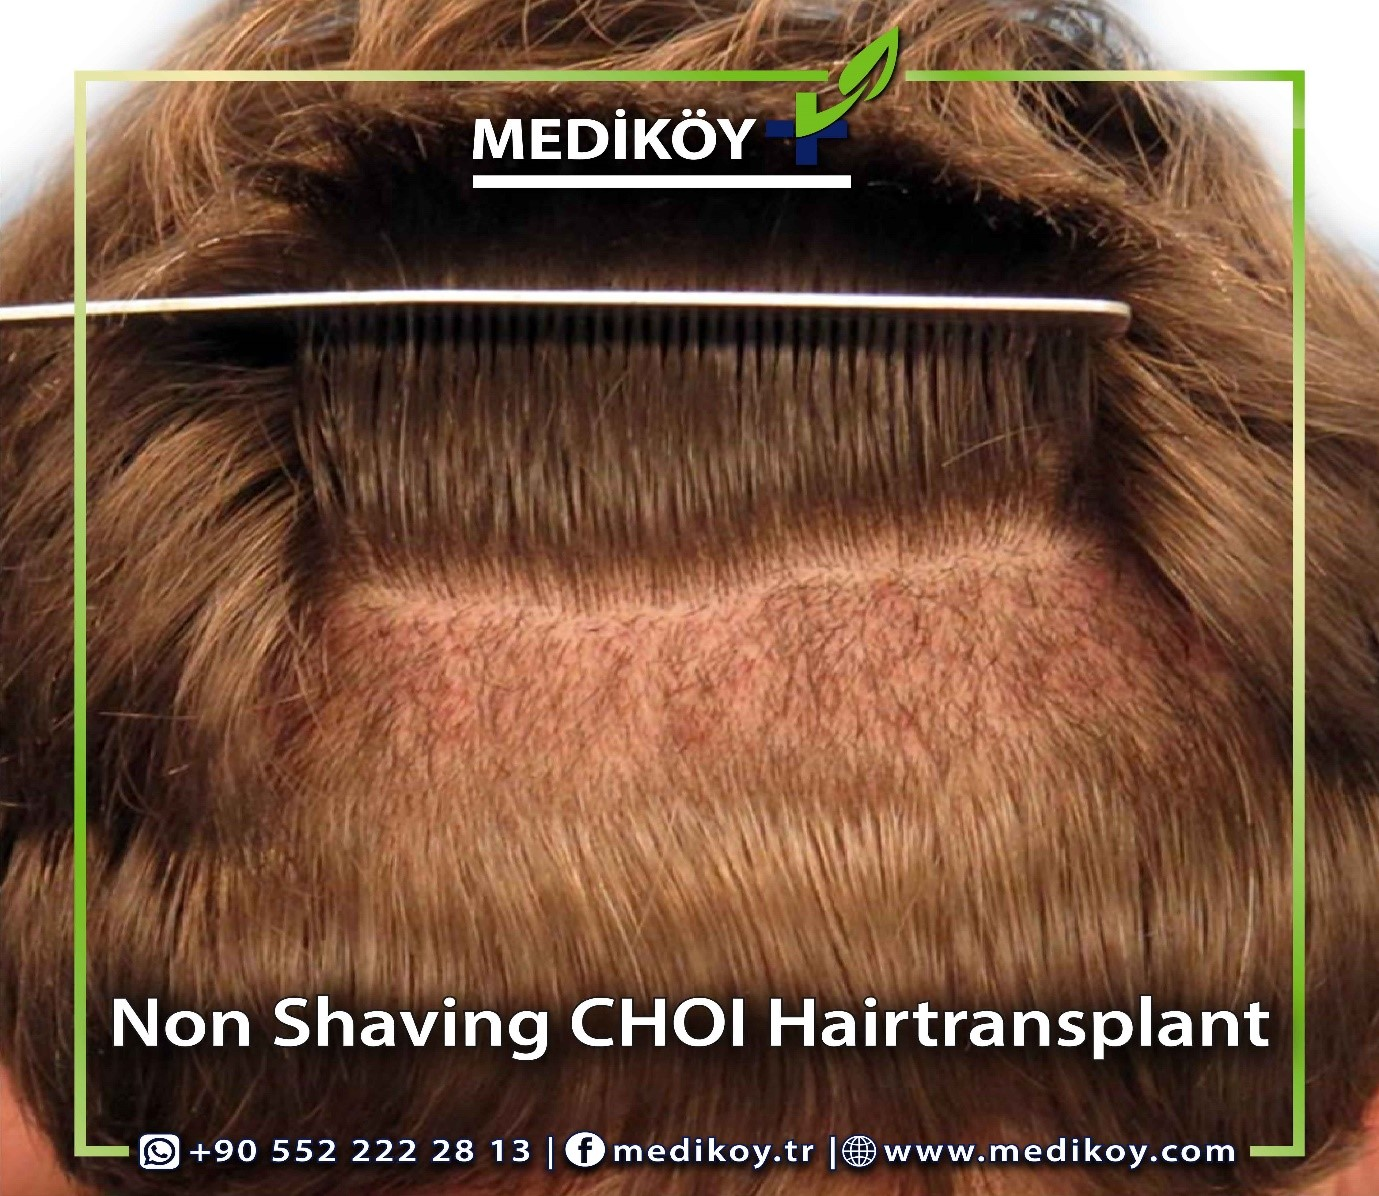 Women HAIR TRANSPLANT BE DONE WITHOUT SHAVING THE HEIR